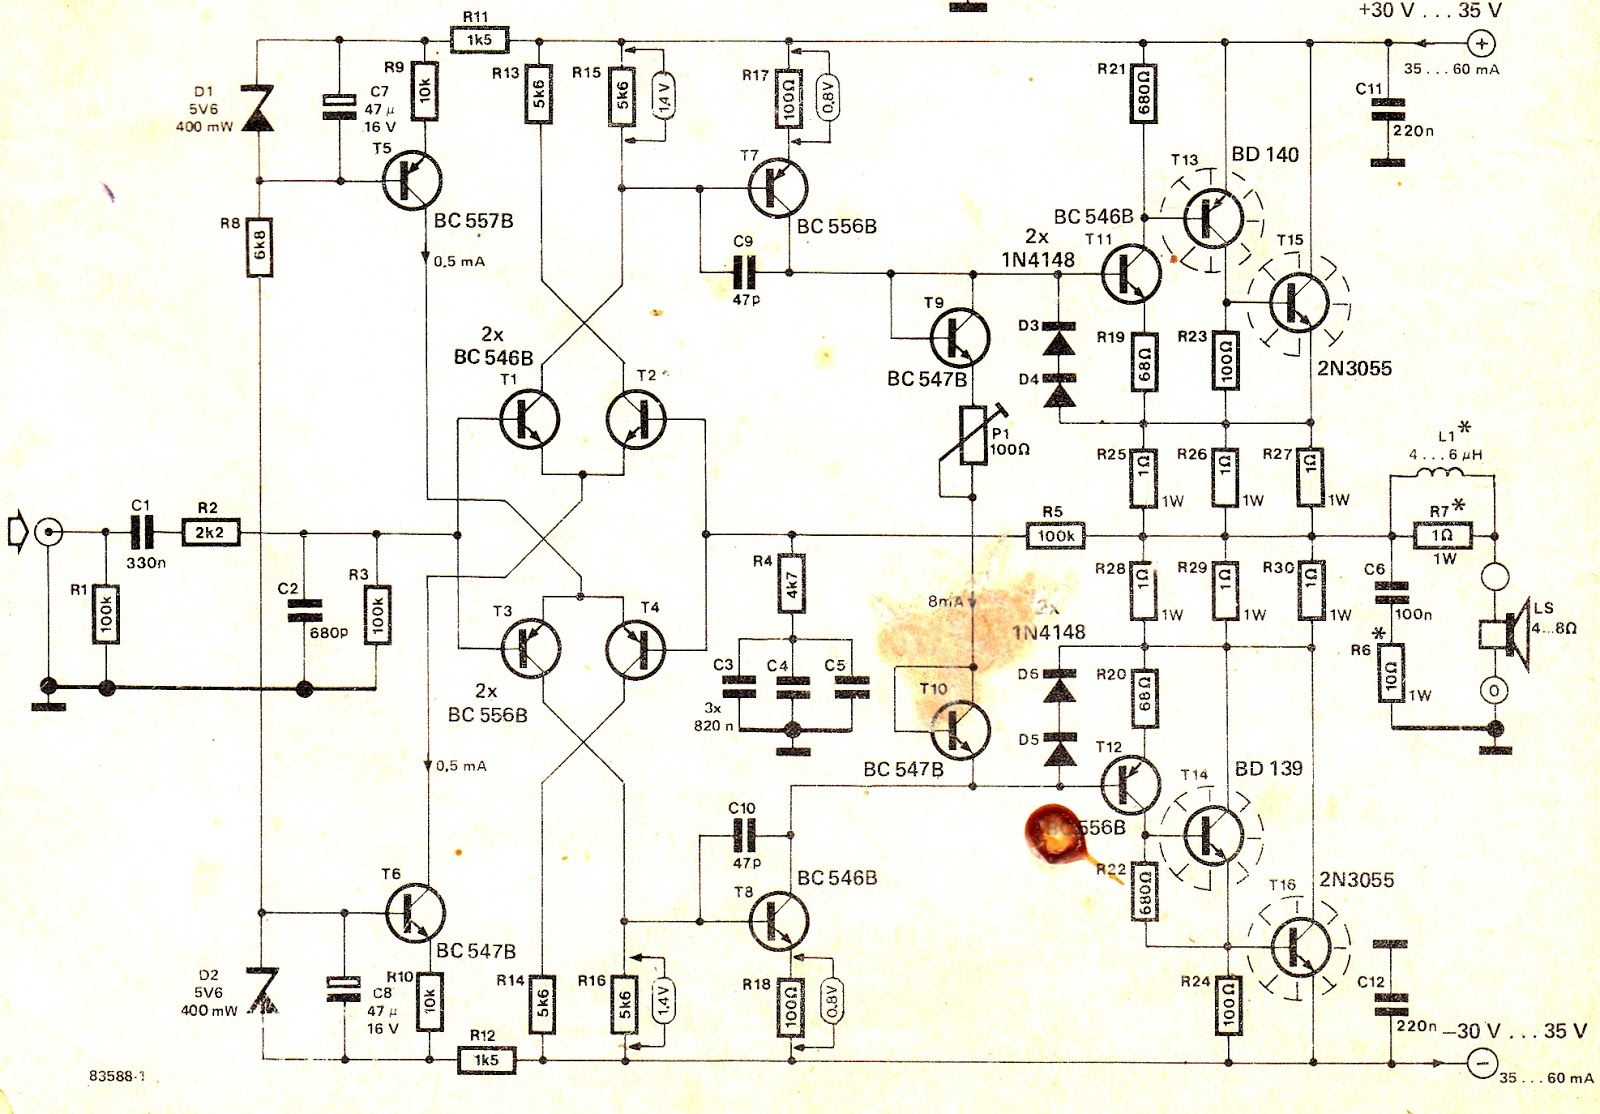 5000 watt amplifier circuit diagram siemens hand off auto switch wiring a very easy and compact 100 transistor has been explained here which uses 2n3055 transistors as the main component